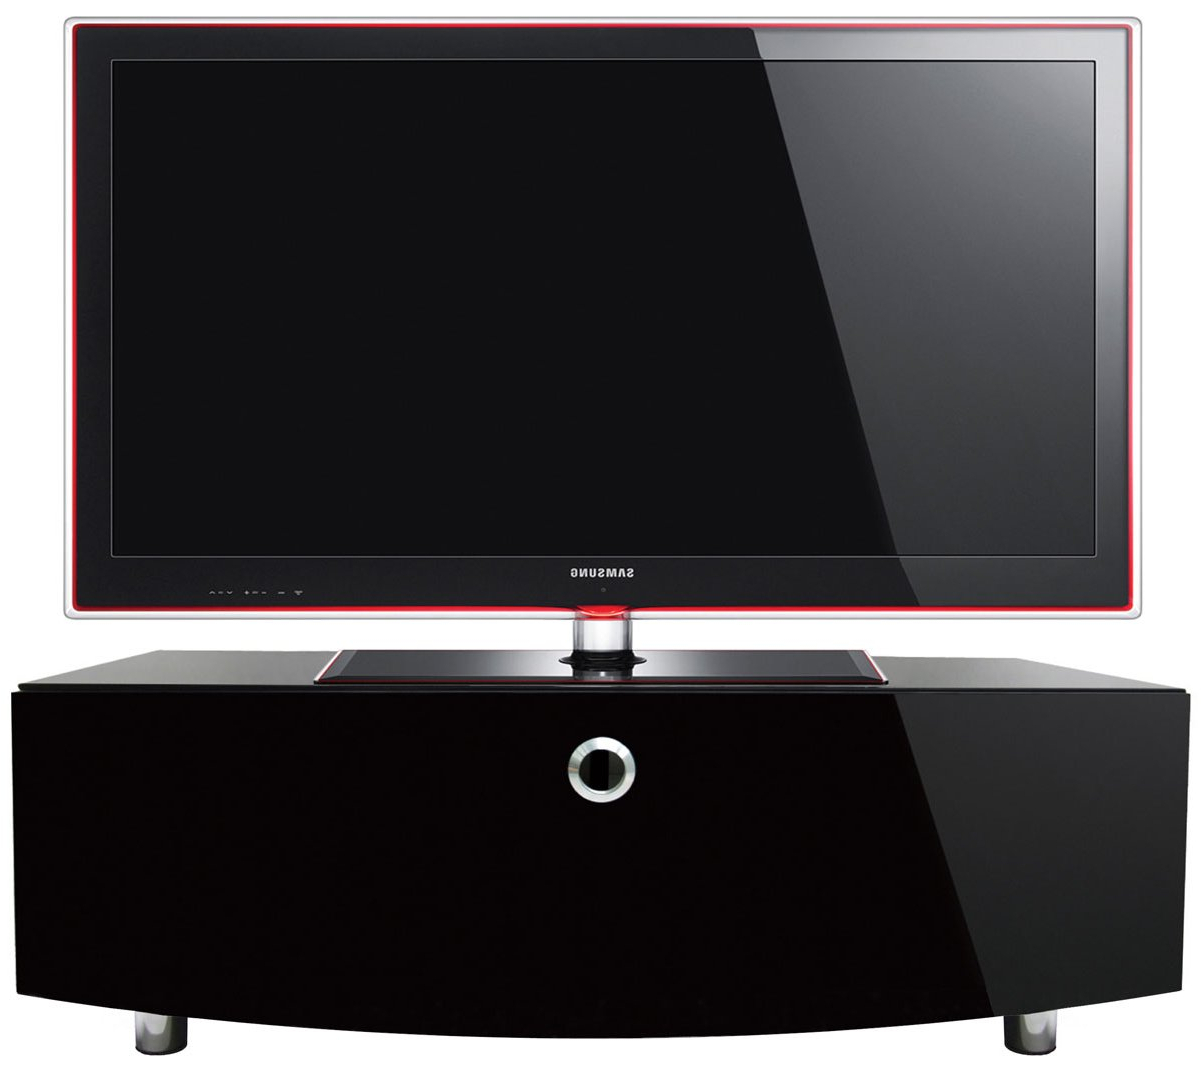 Mda Designs Curve 1000 Tv Stand – Black For Well Liked Black Gloss Corner Tv Stand (View 12 of 20)